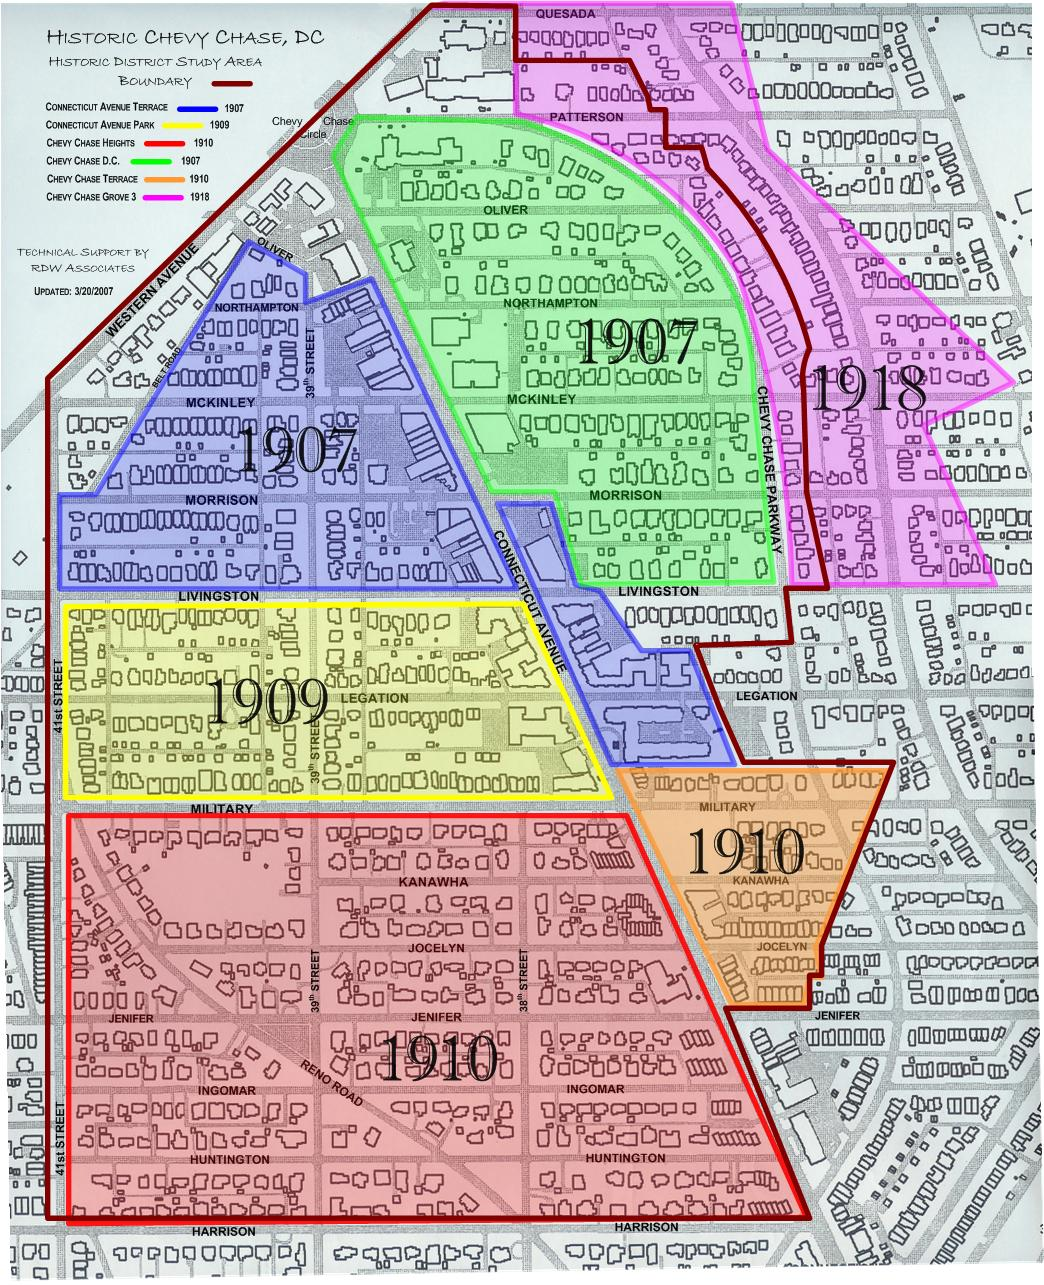 Historic-District-CheveyChase Dc Districts Map on